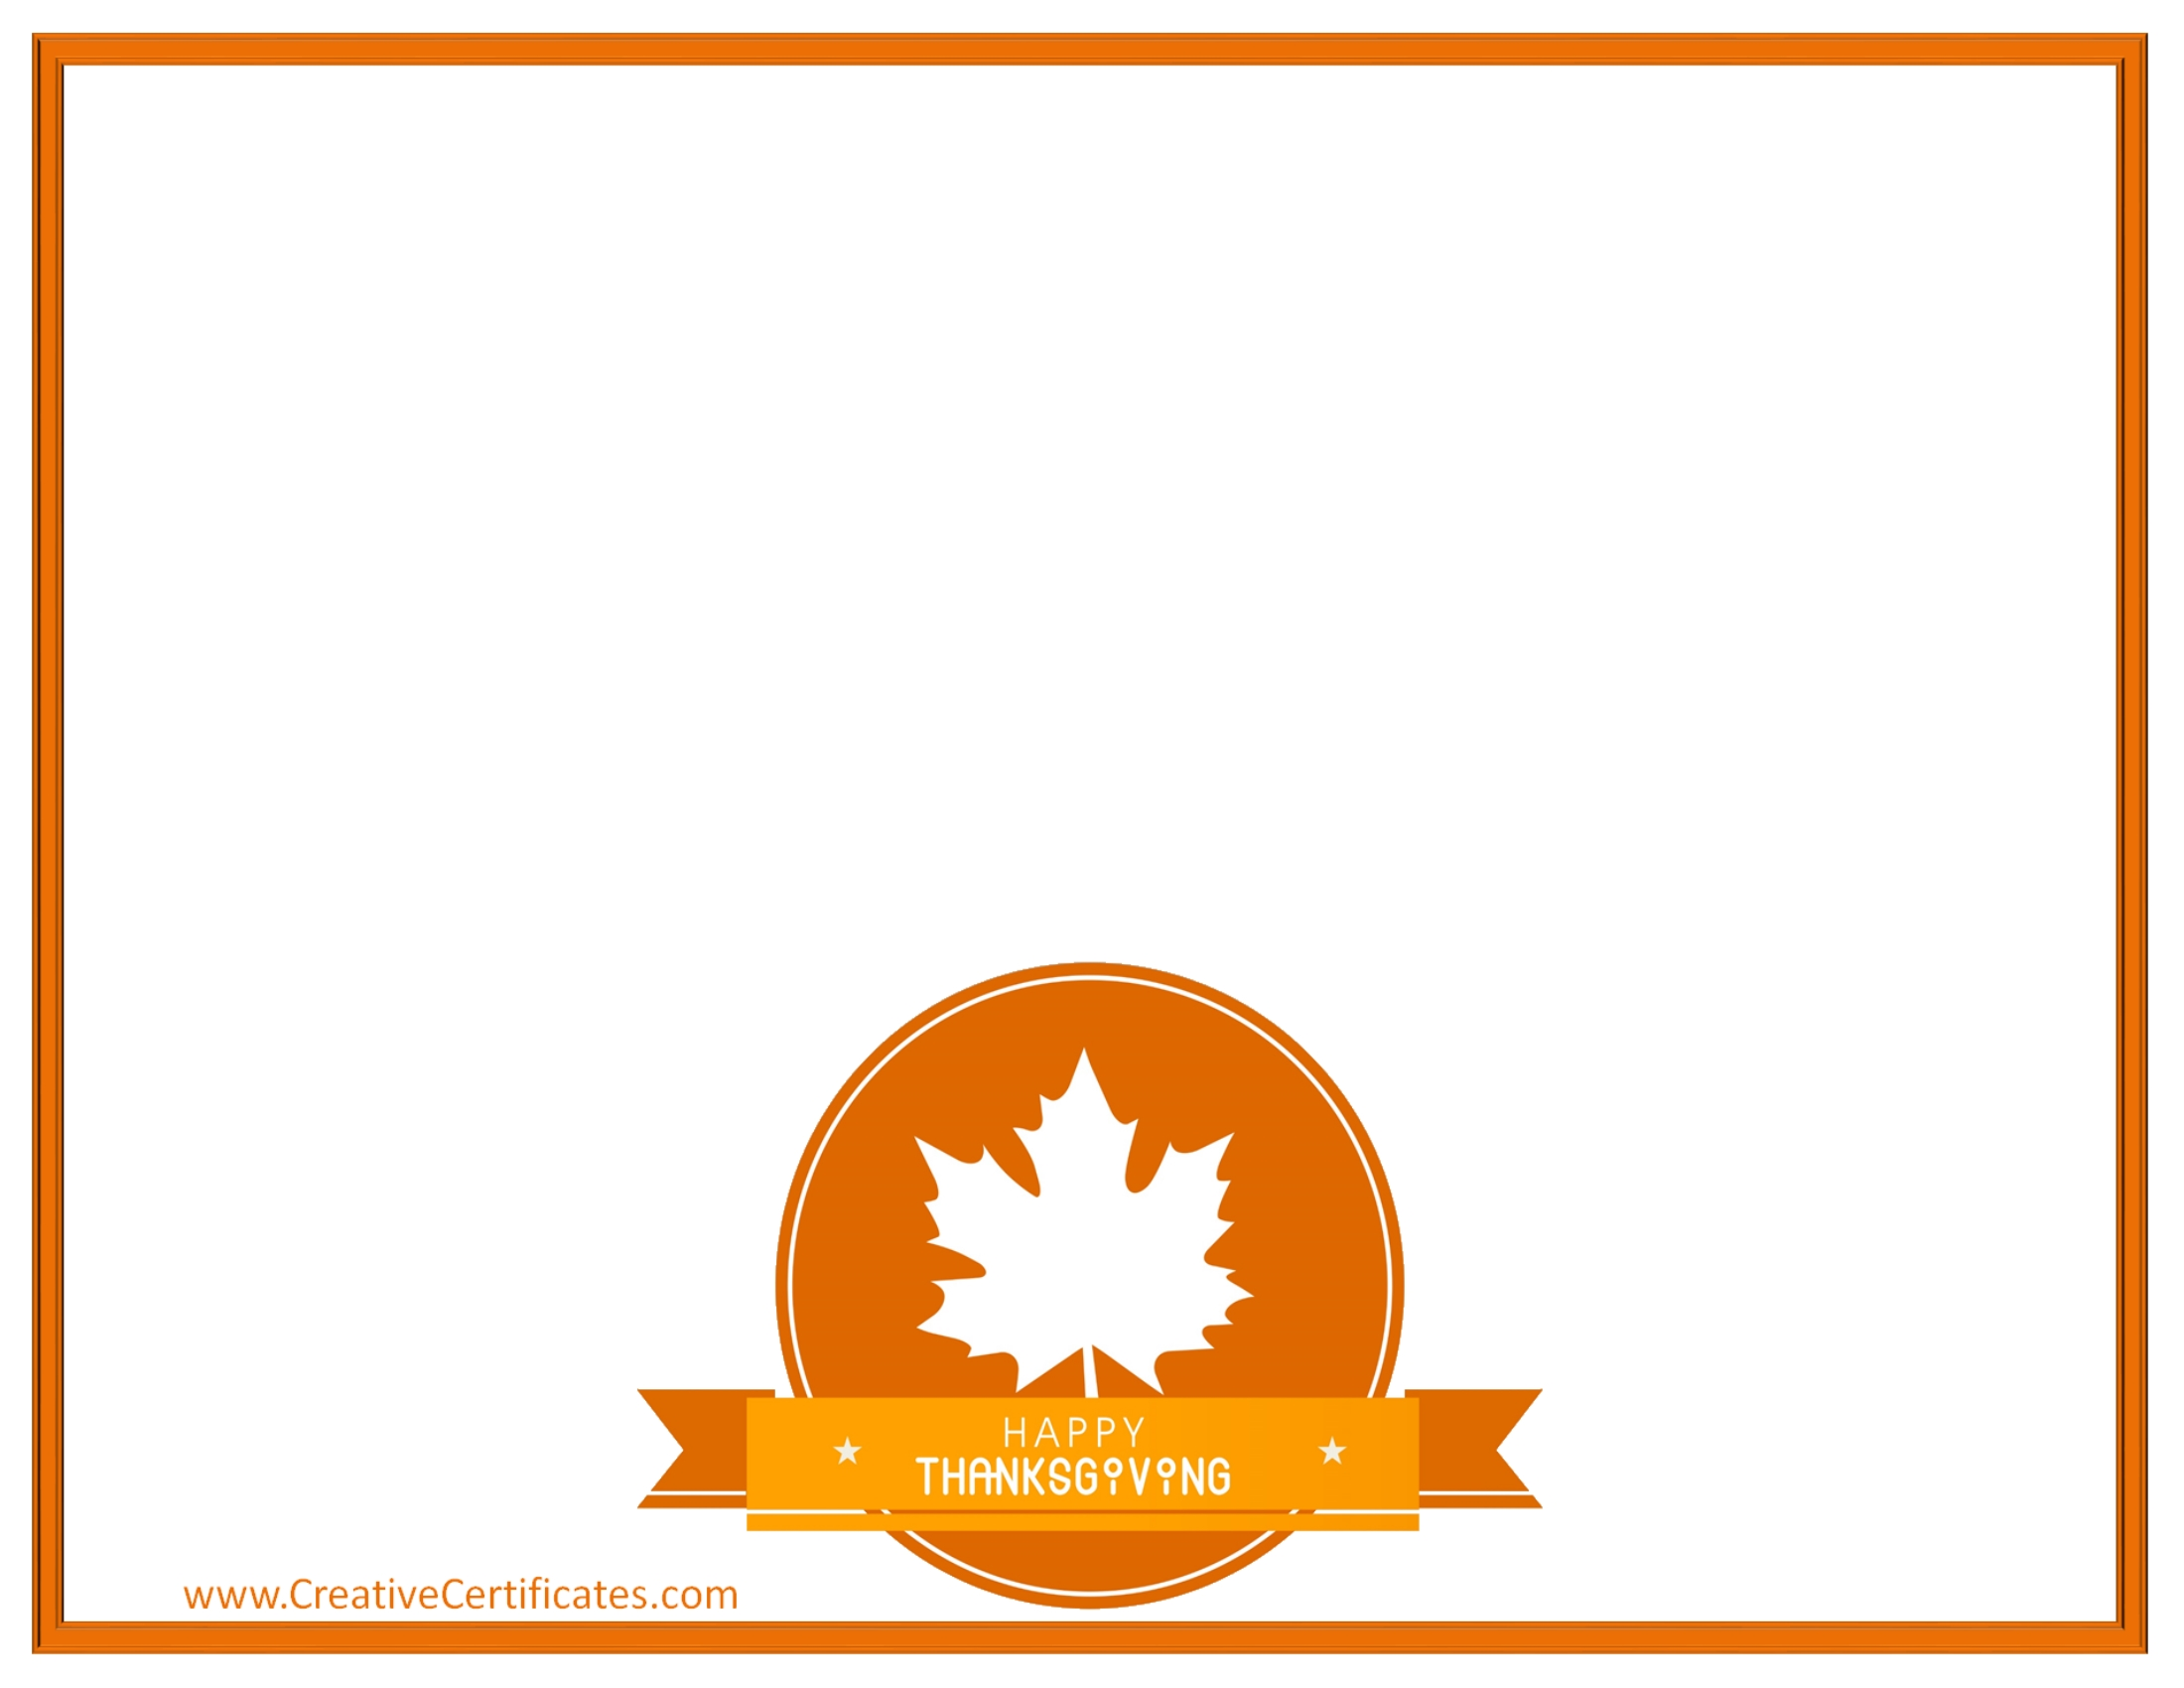 2200x1700 Free Thanksgiving Borders 6